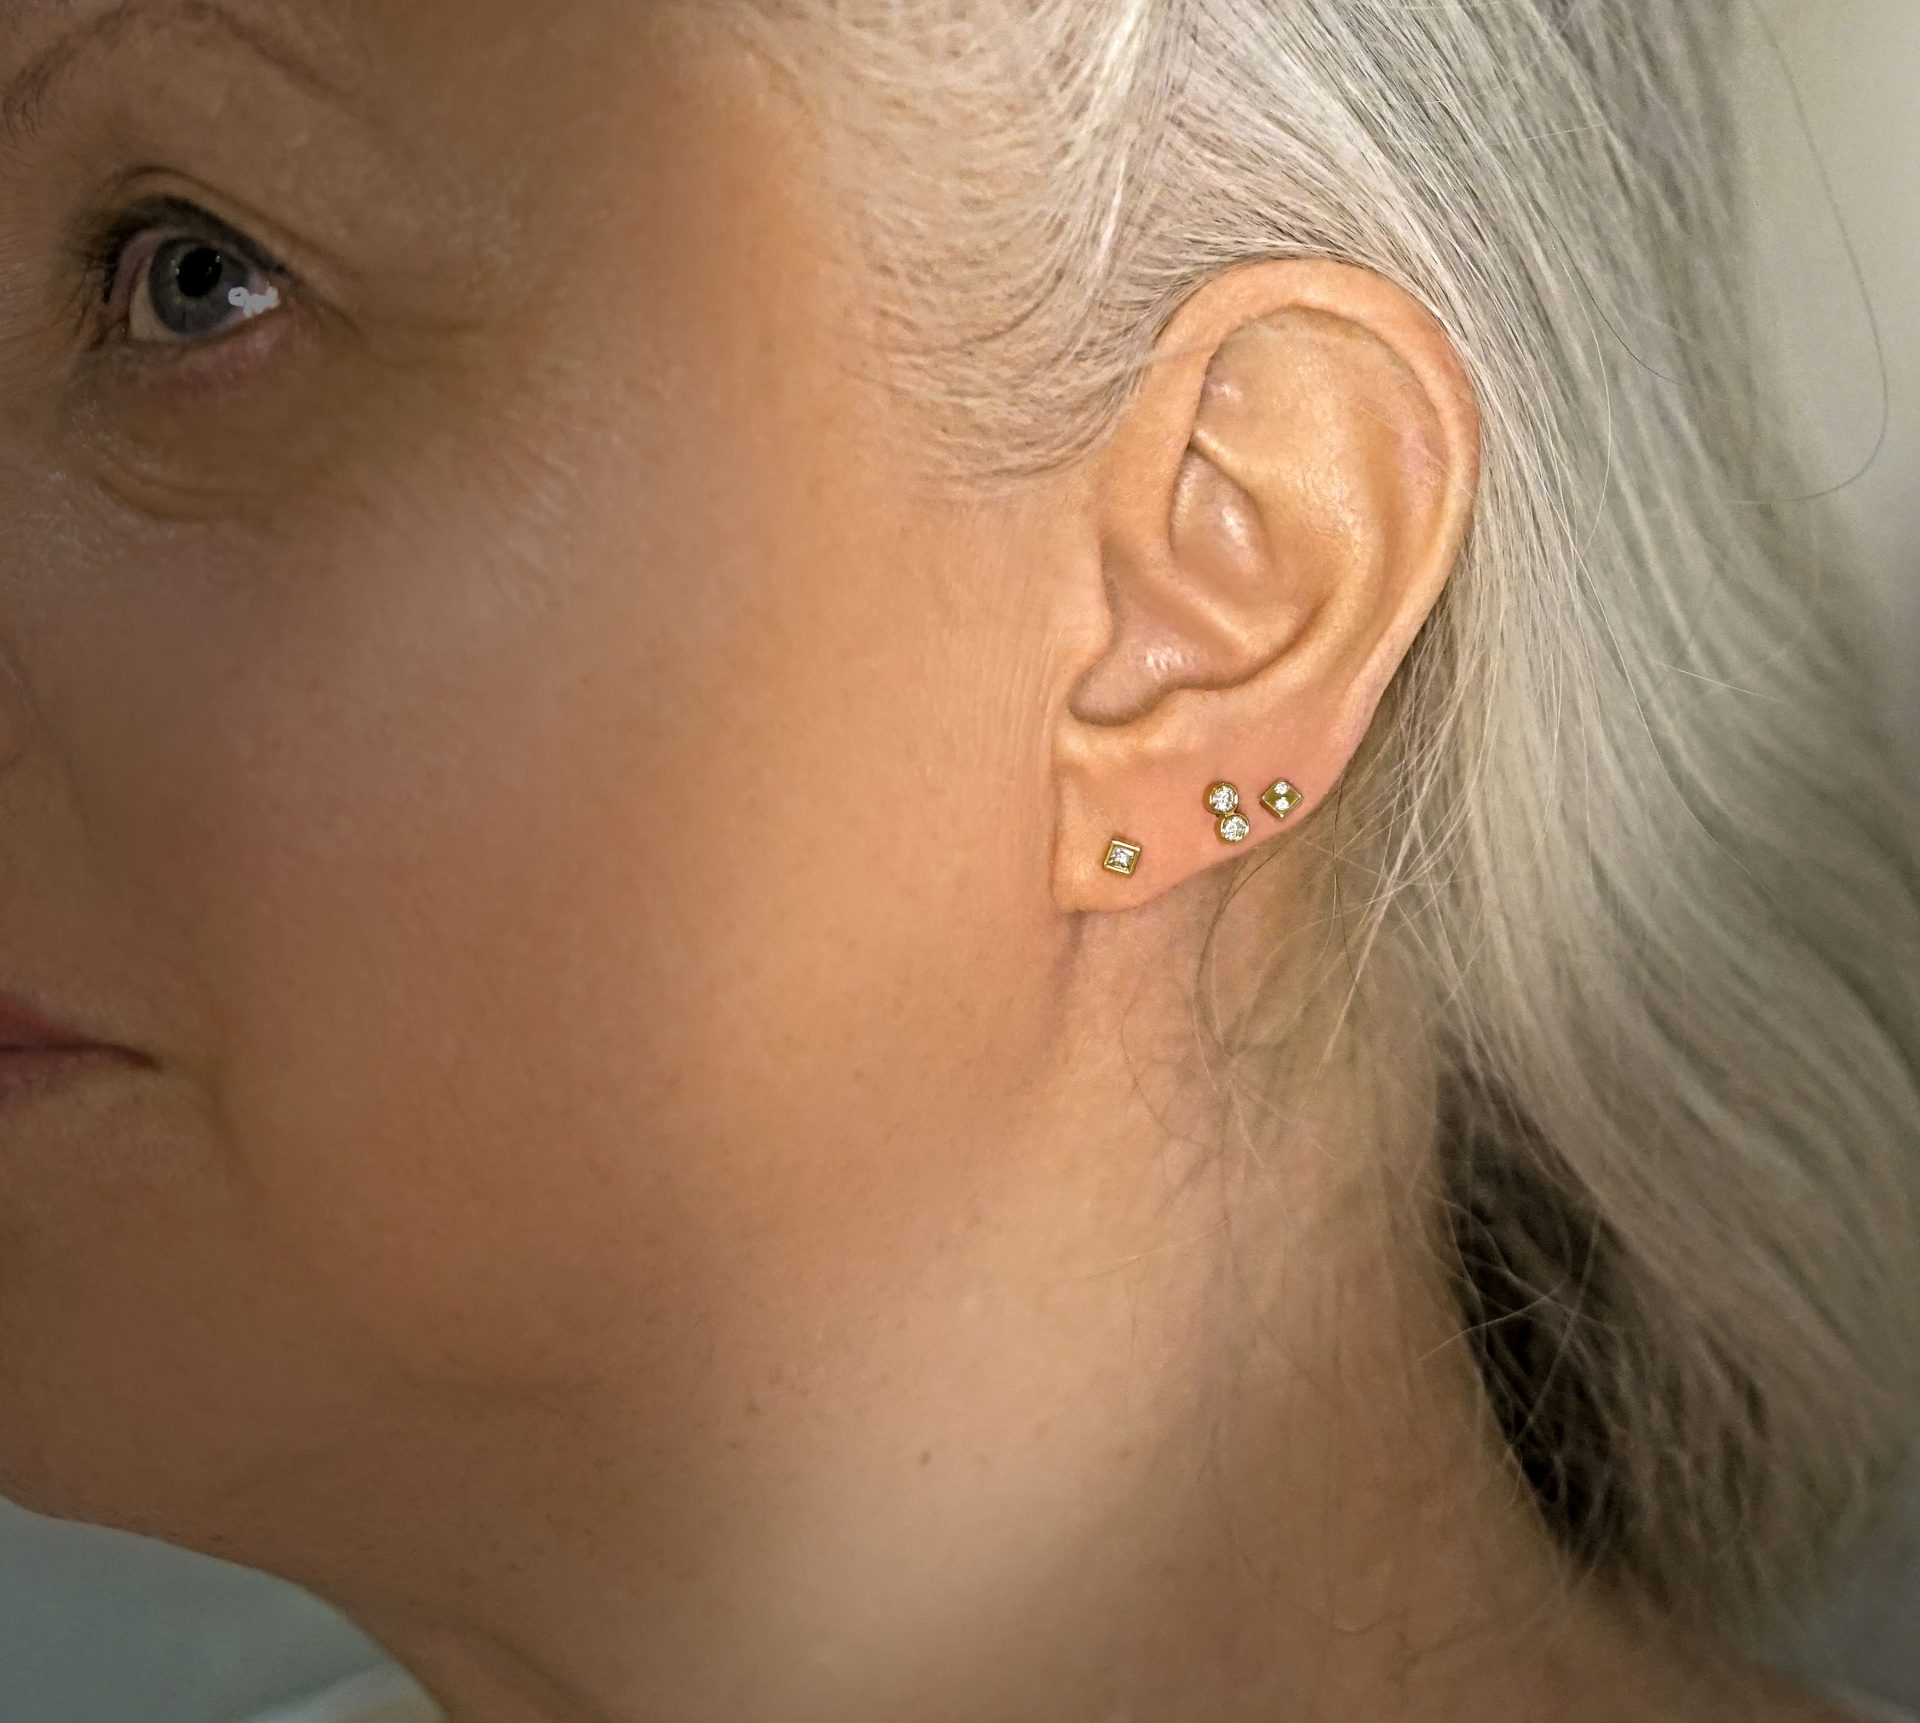 lena-cohen-anti-age-fashion-ear-stack-multiple-piercing-earrings-am-i-old-for-ear-piercing